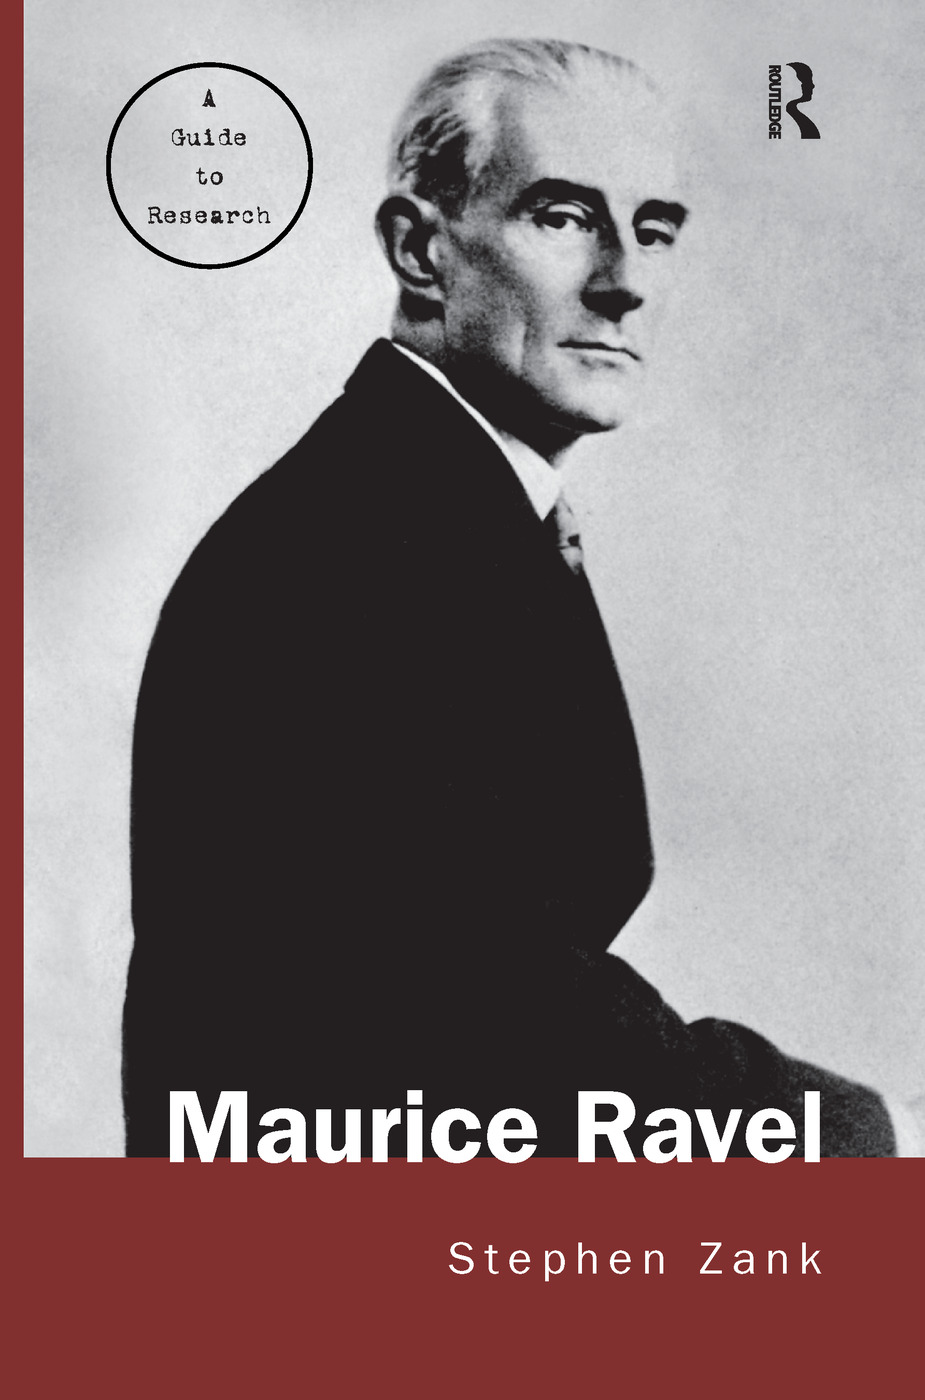 Maurice Ravel: A Guide to Research book cover